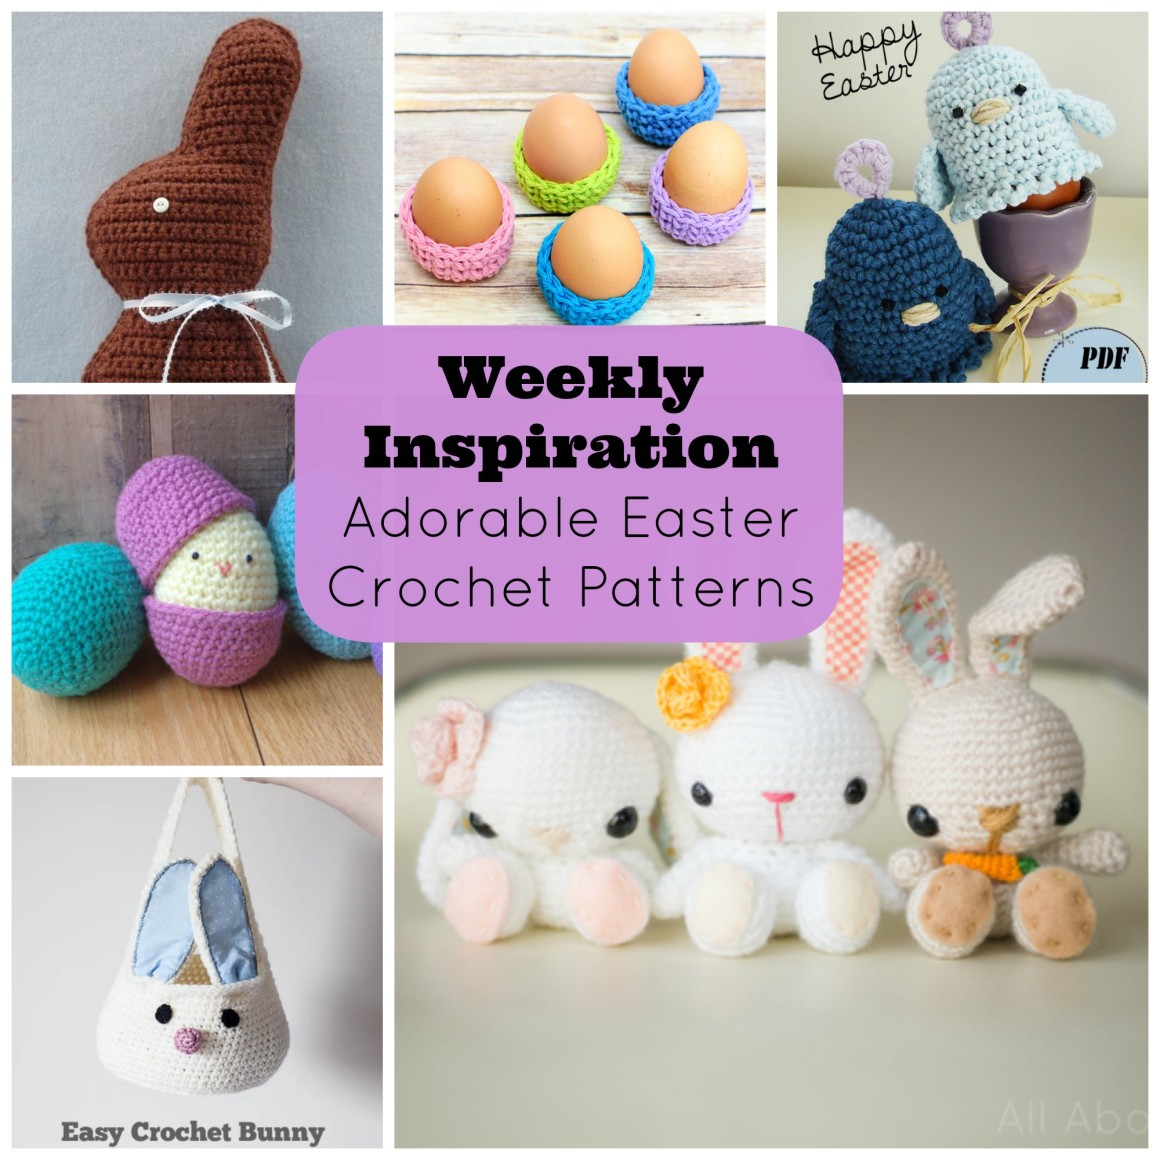 Weekly Inspiration Adorable Easter Crochet Patterns.jpg